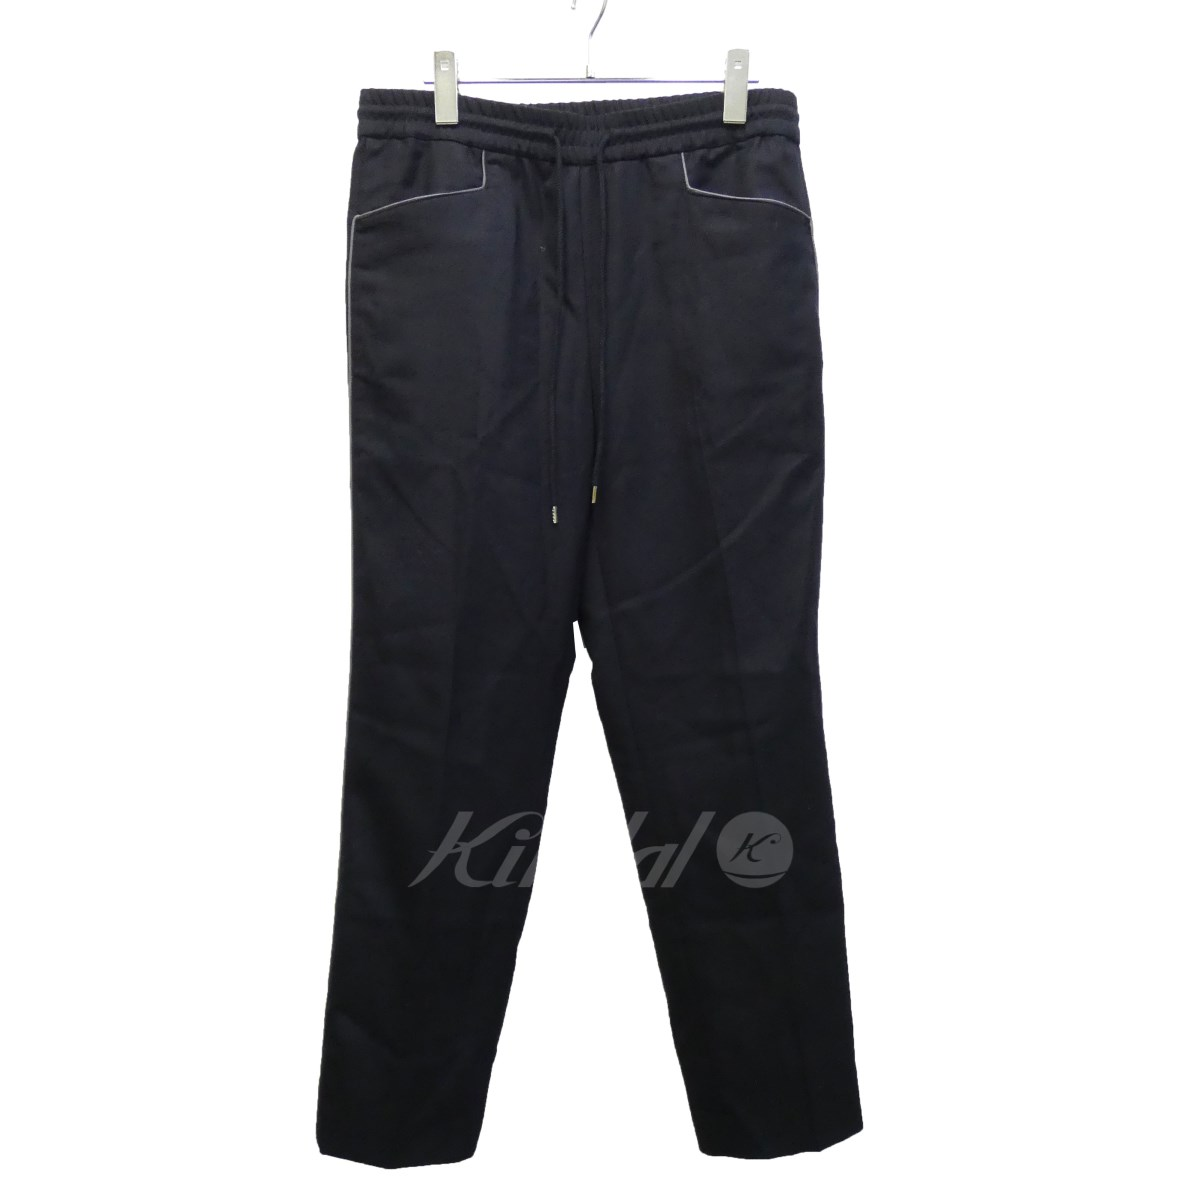 【中古】JOHN LAWRENCE SULLIVAN 18AW 「WOOL TAPERD PANTS」ウールテーパードパンツ 【送料無料】 【106217】 【KIND1551】